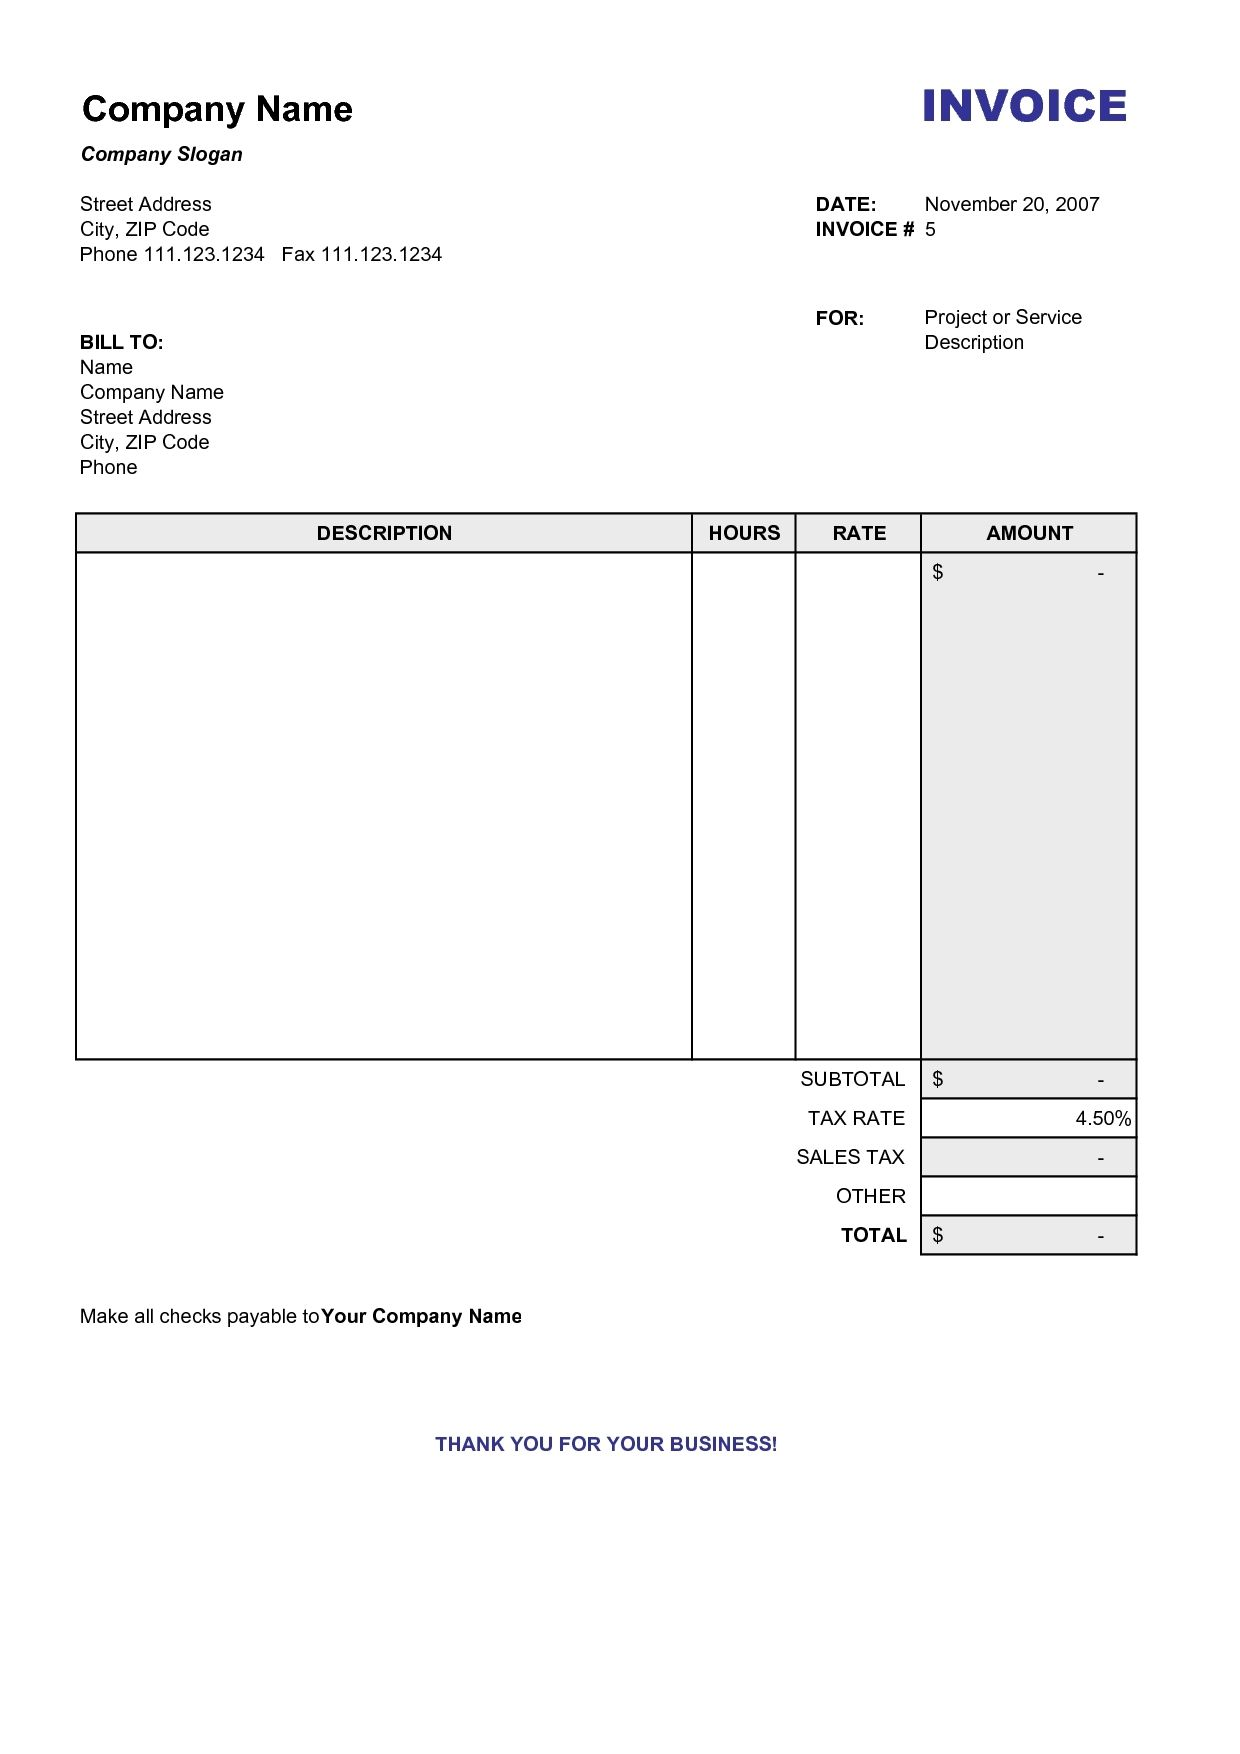 Copy Of A Blank Invoice Invoice Template Free Copy Of Blank - Open office invoice template free for service business